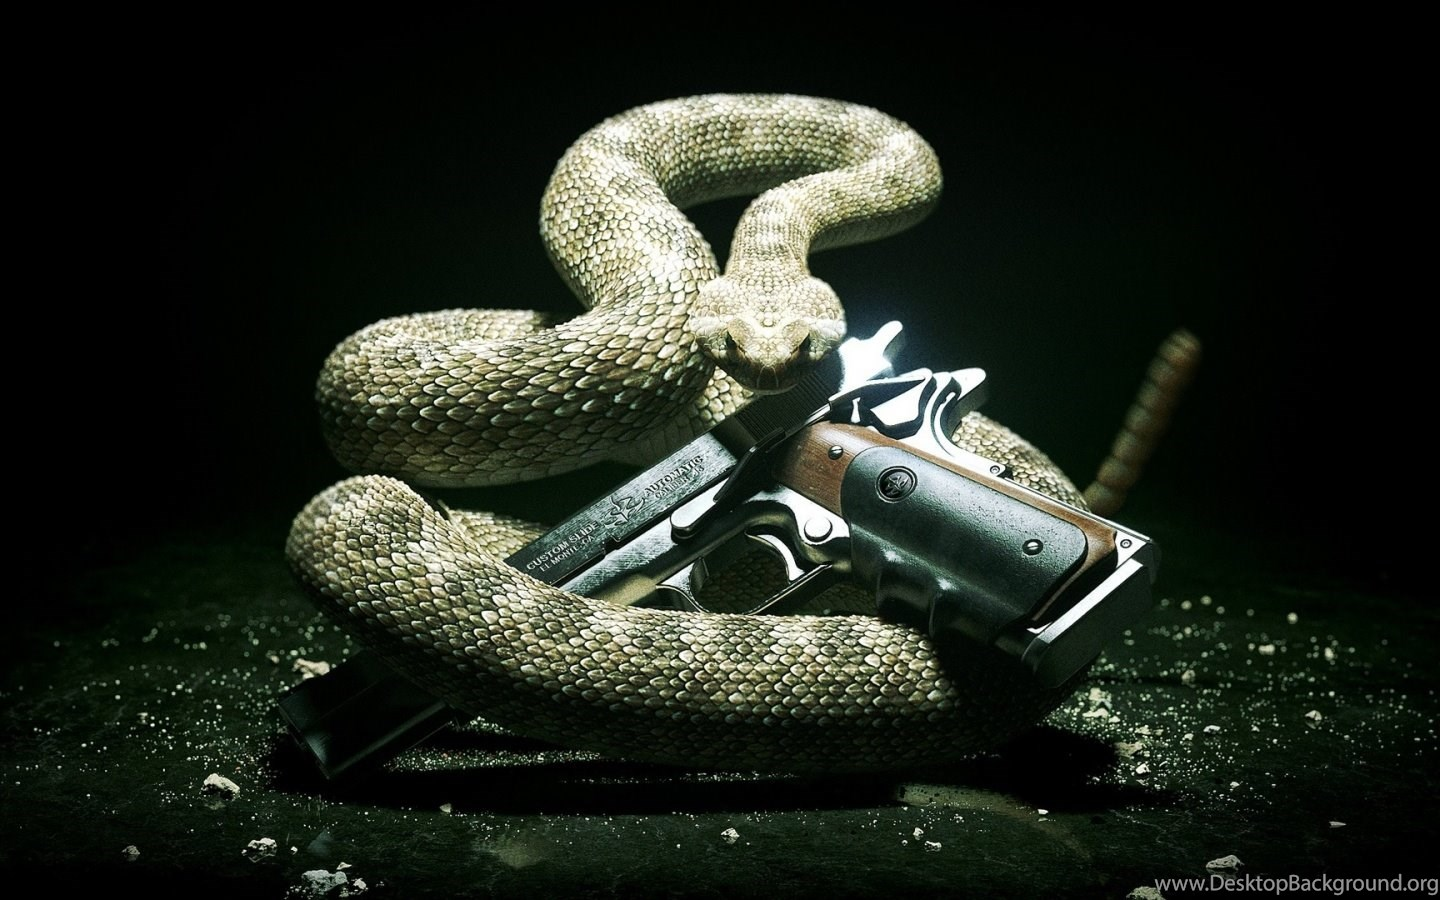 hitman snake and the gun desktop backgrounds hd 1920x1080 desktop